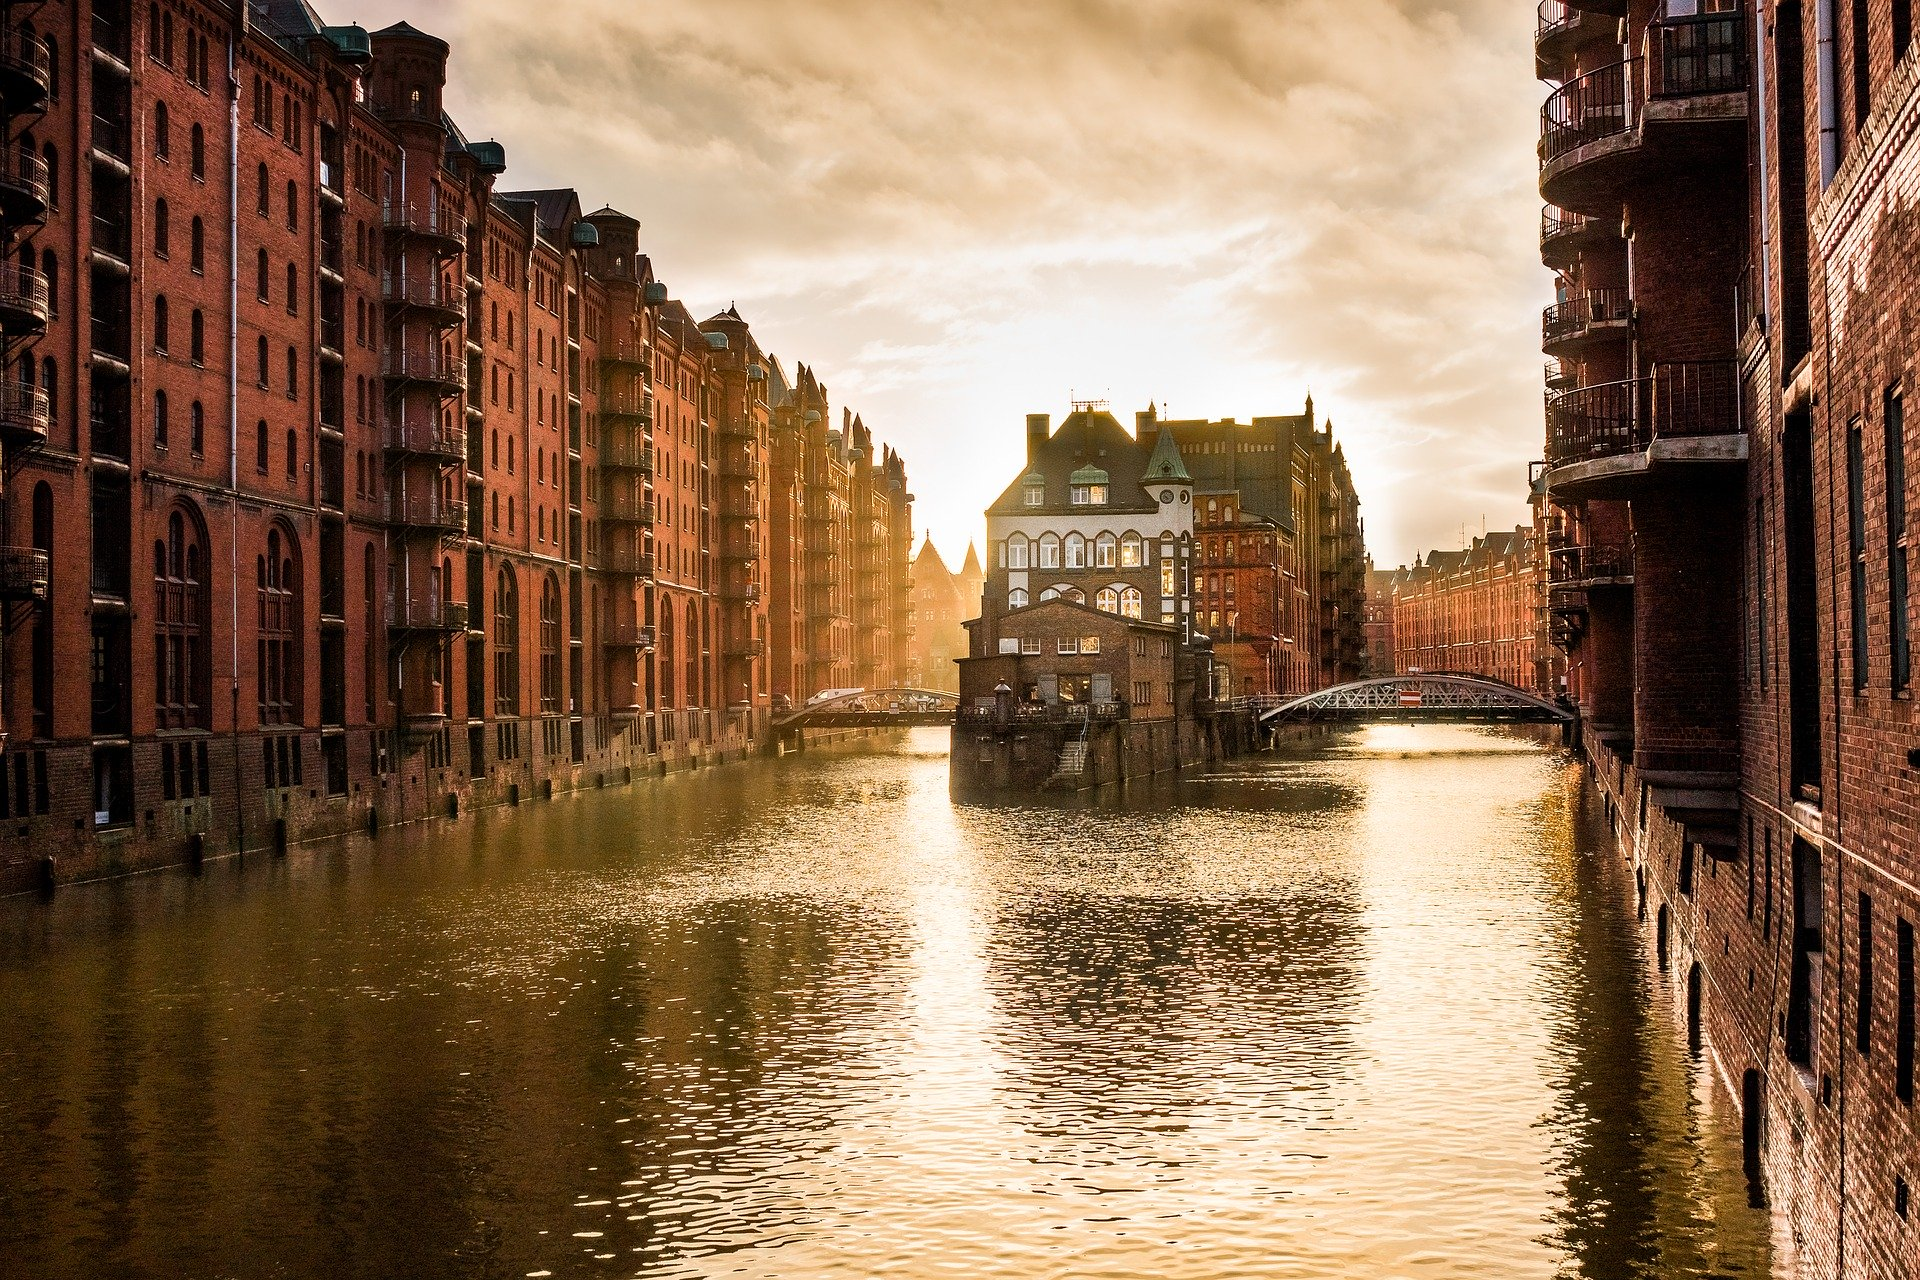 Realtor Hamburg - Your condo, house or property in Germany